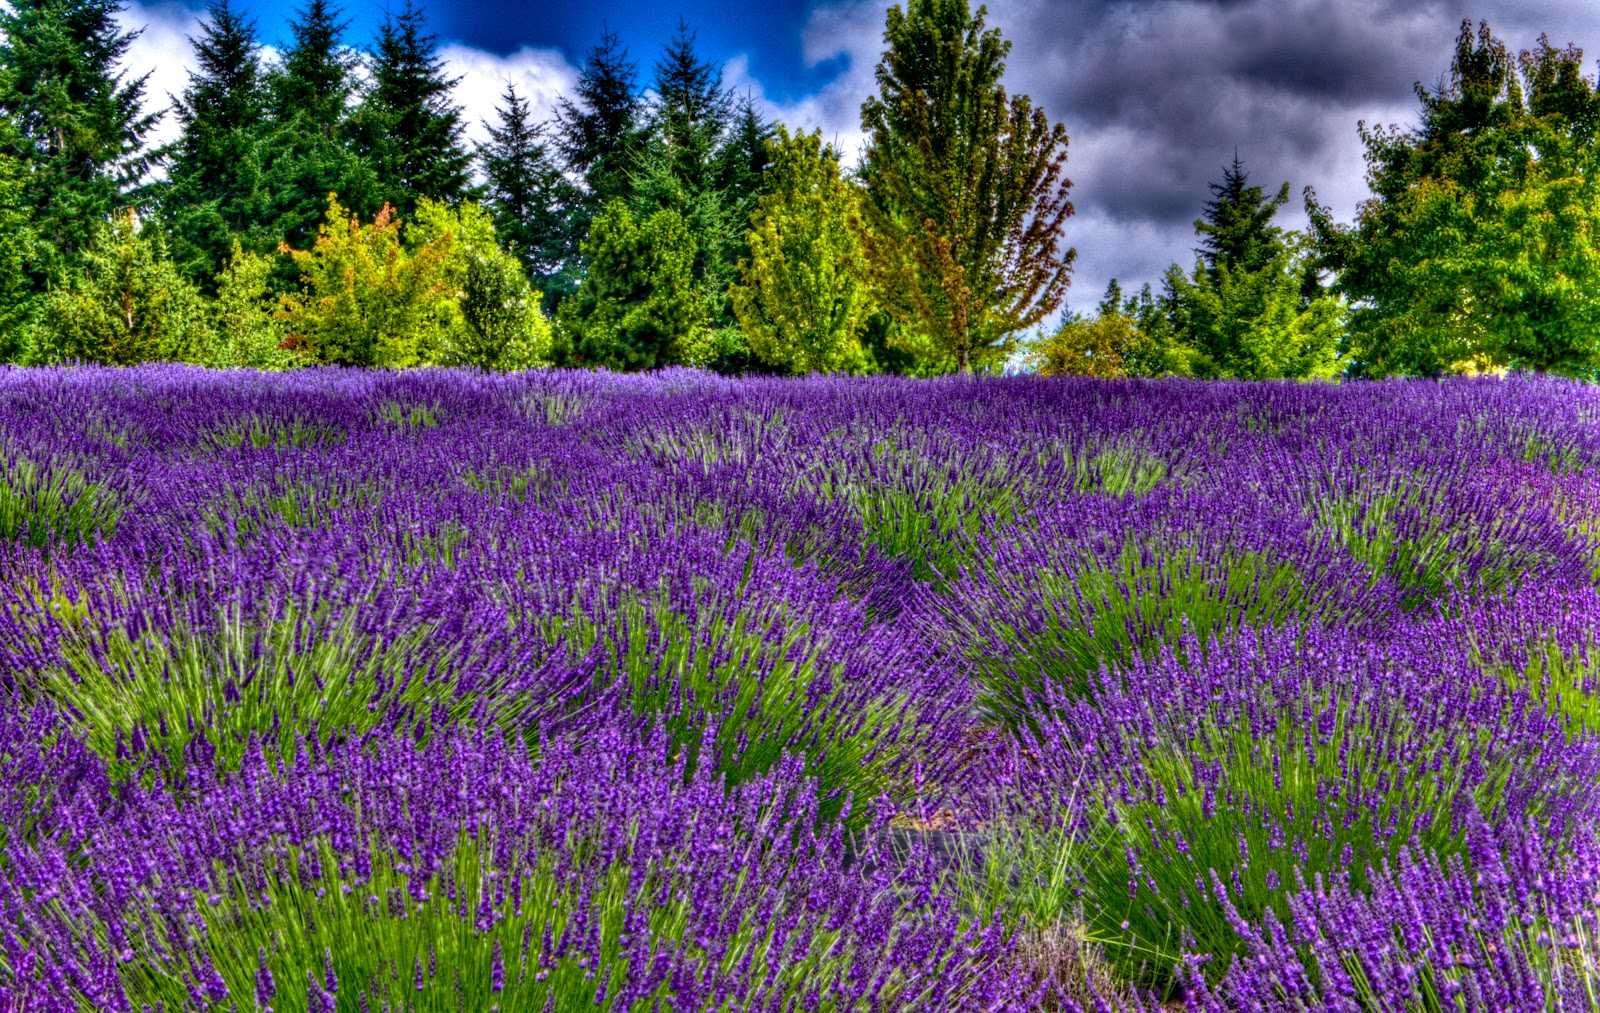 Thom Zehrfeld Photography : Cool Lavender Fields